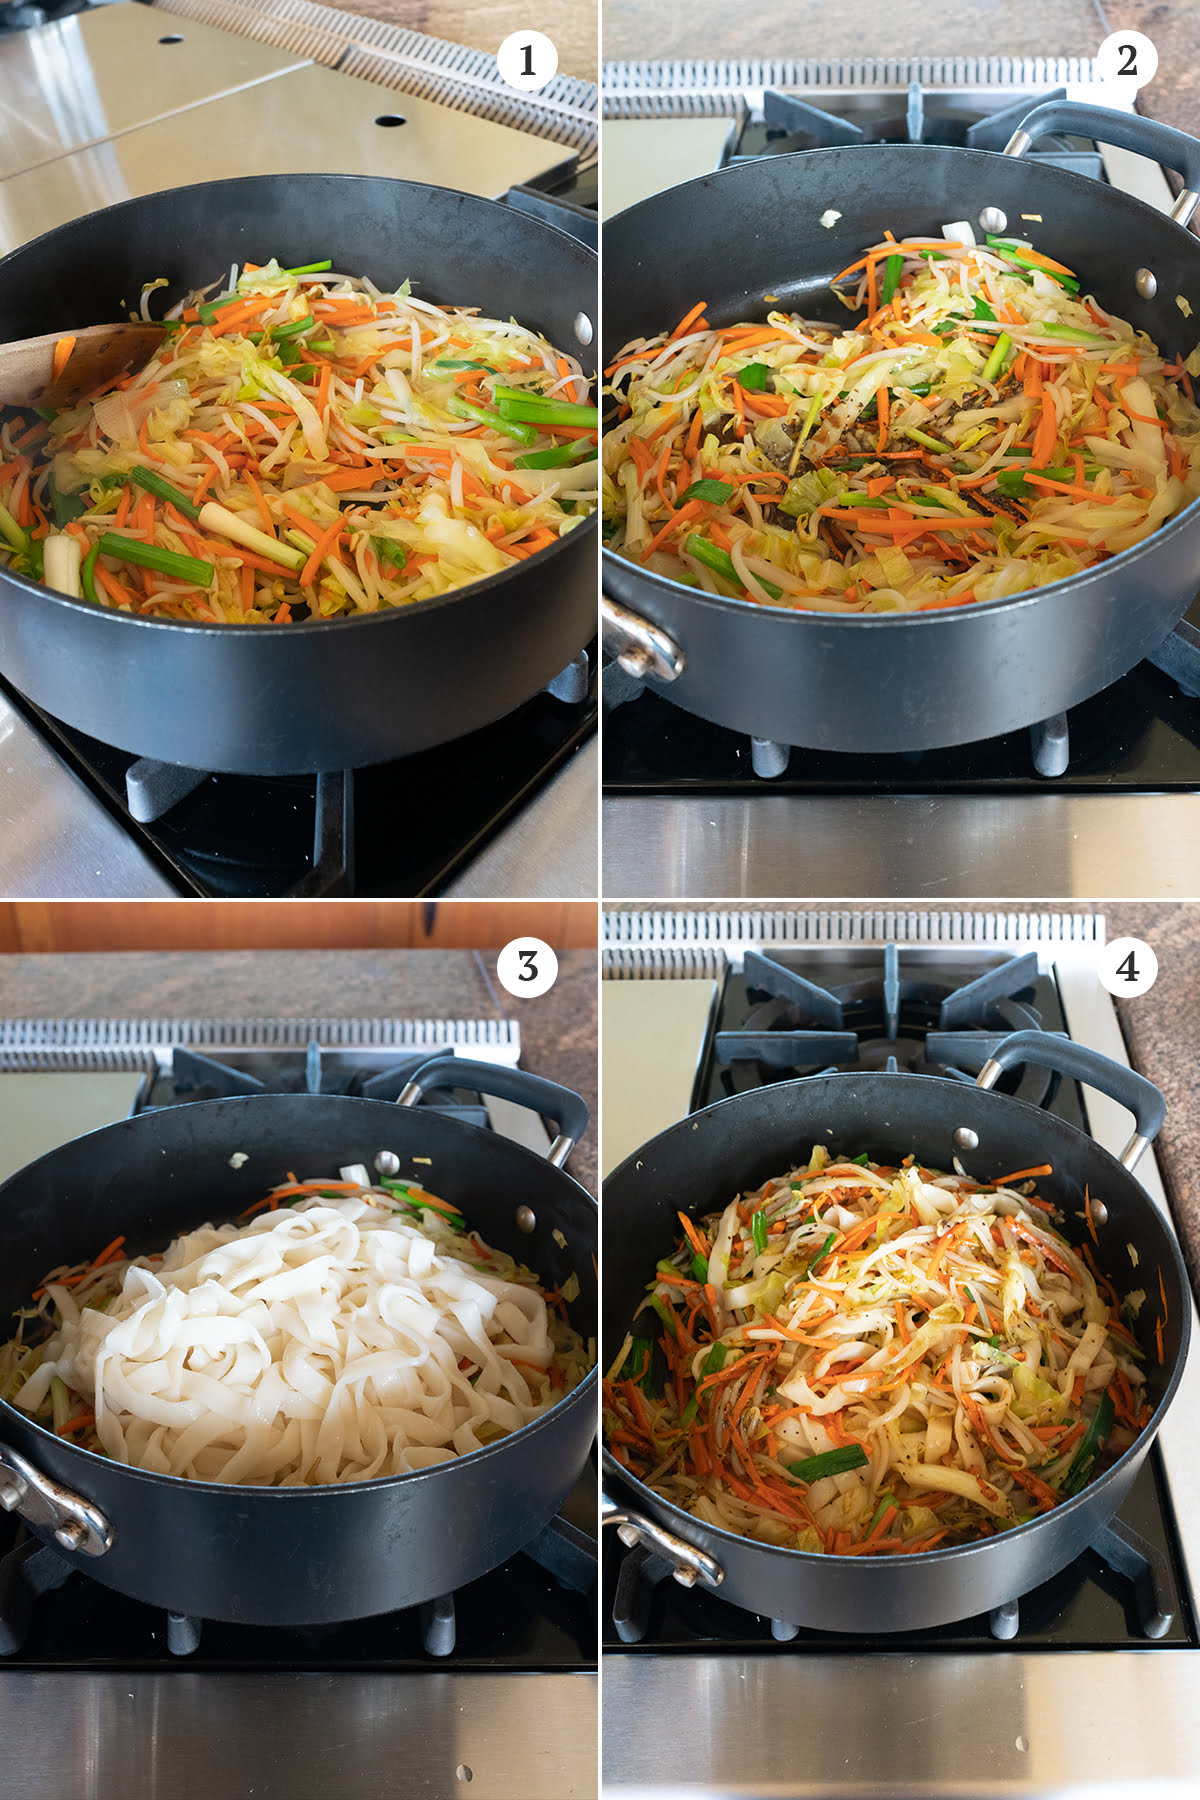 Collage of making the chow fun dish. First saute all the vegetables, then add the sauce mixture, then add the noodles. Finally, stir, mix, and eat.